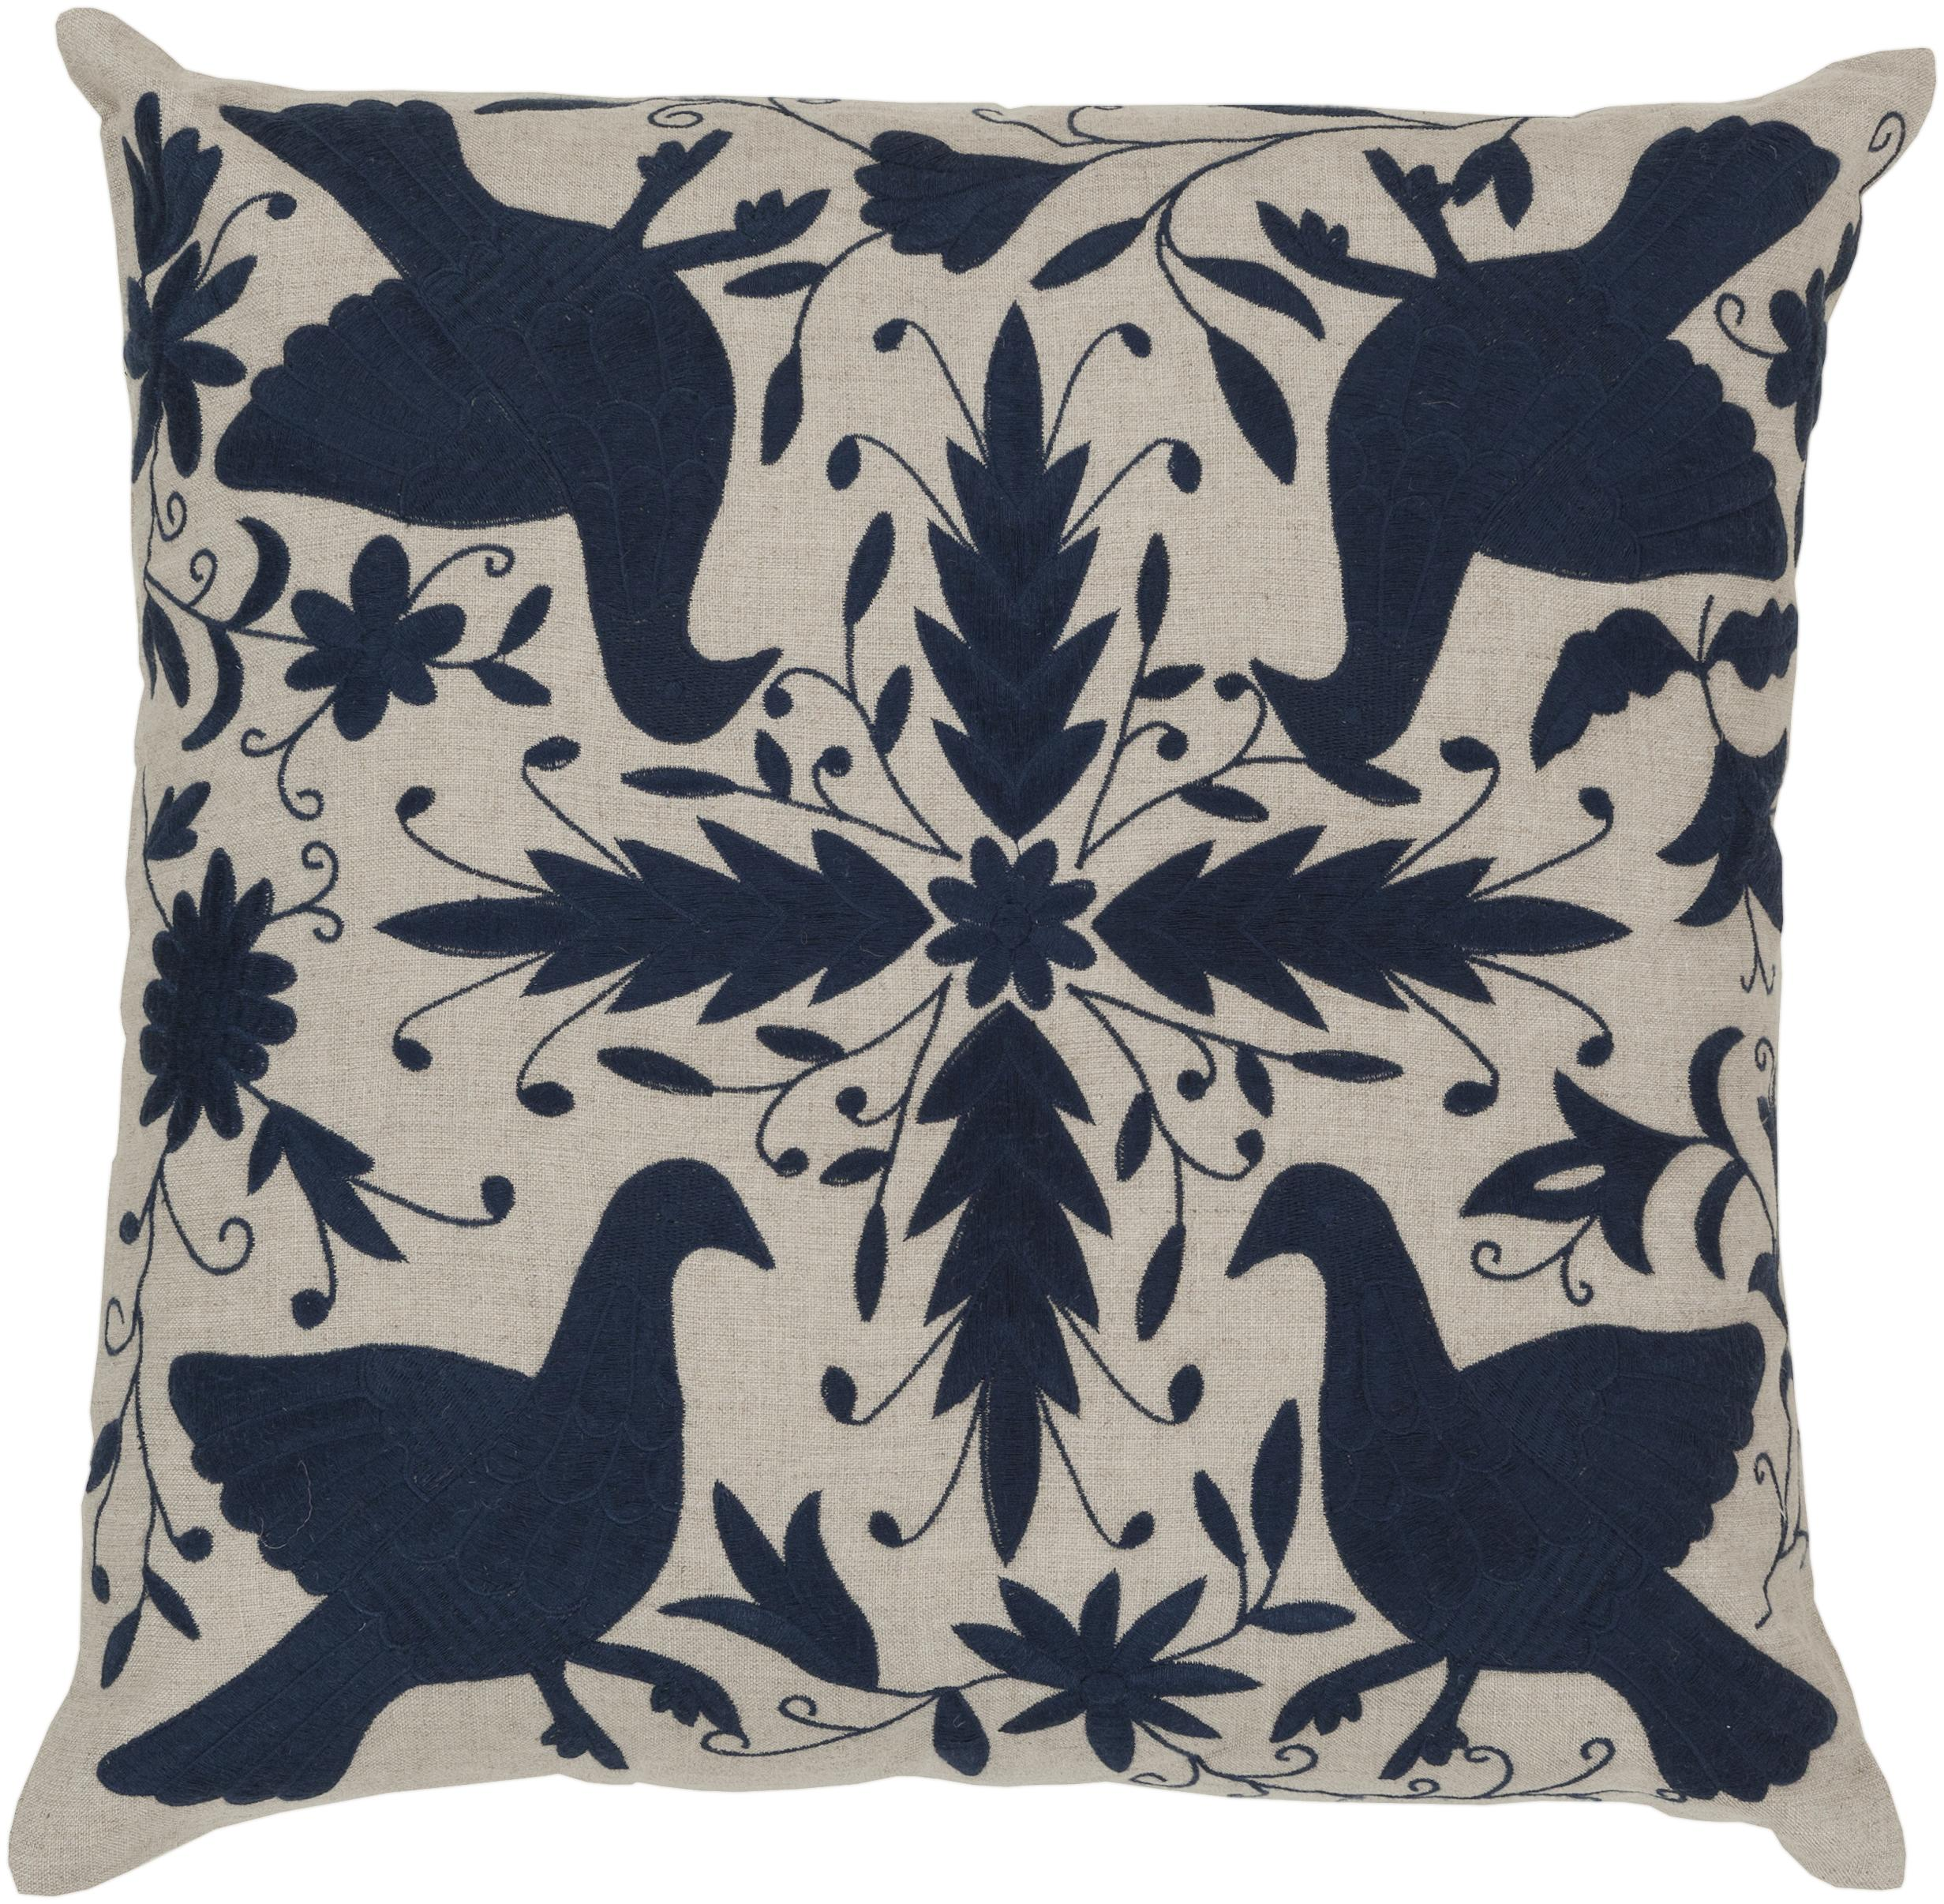 "Surya Pillows 18"" x 18"" Pillow - Item Number: LD020-1818P"